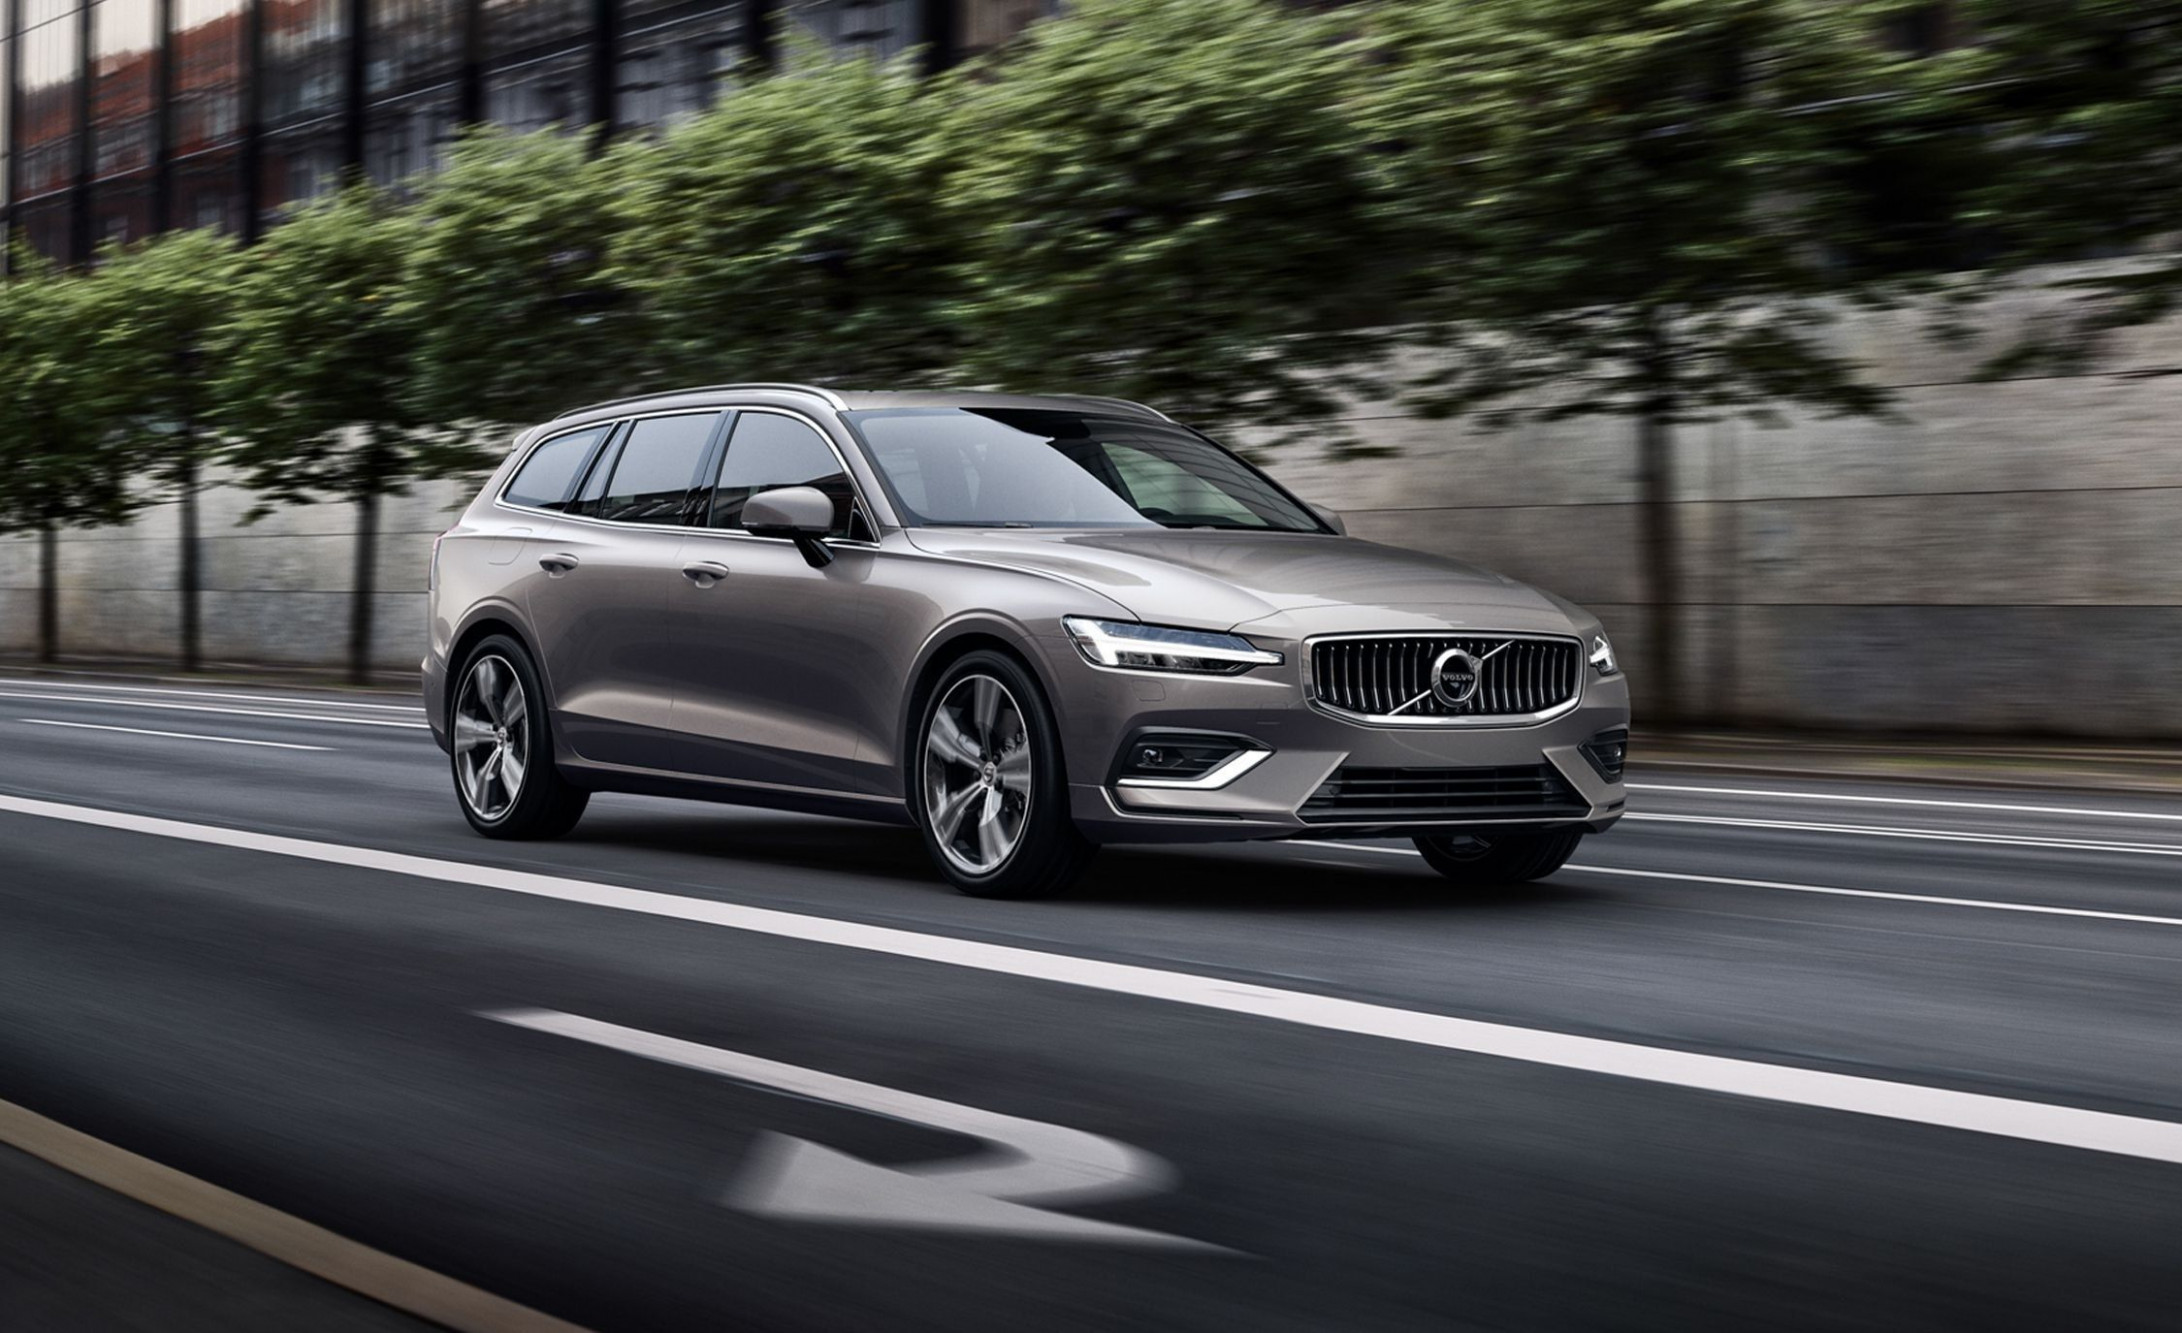 6 Volvo S6 Ground Clearance Information (With images) | Volvo ..